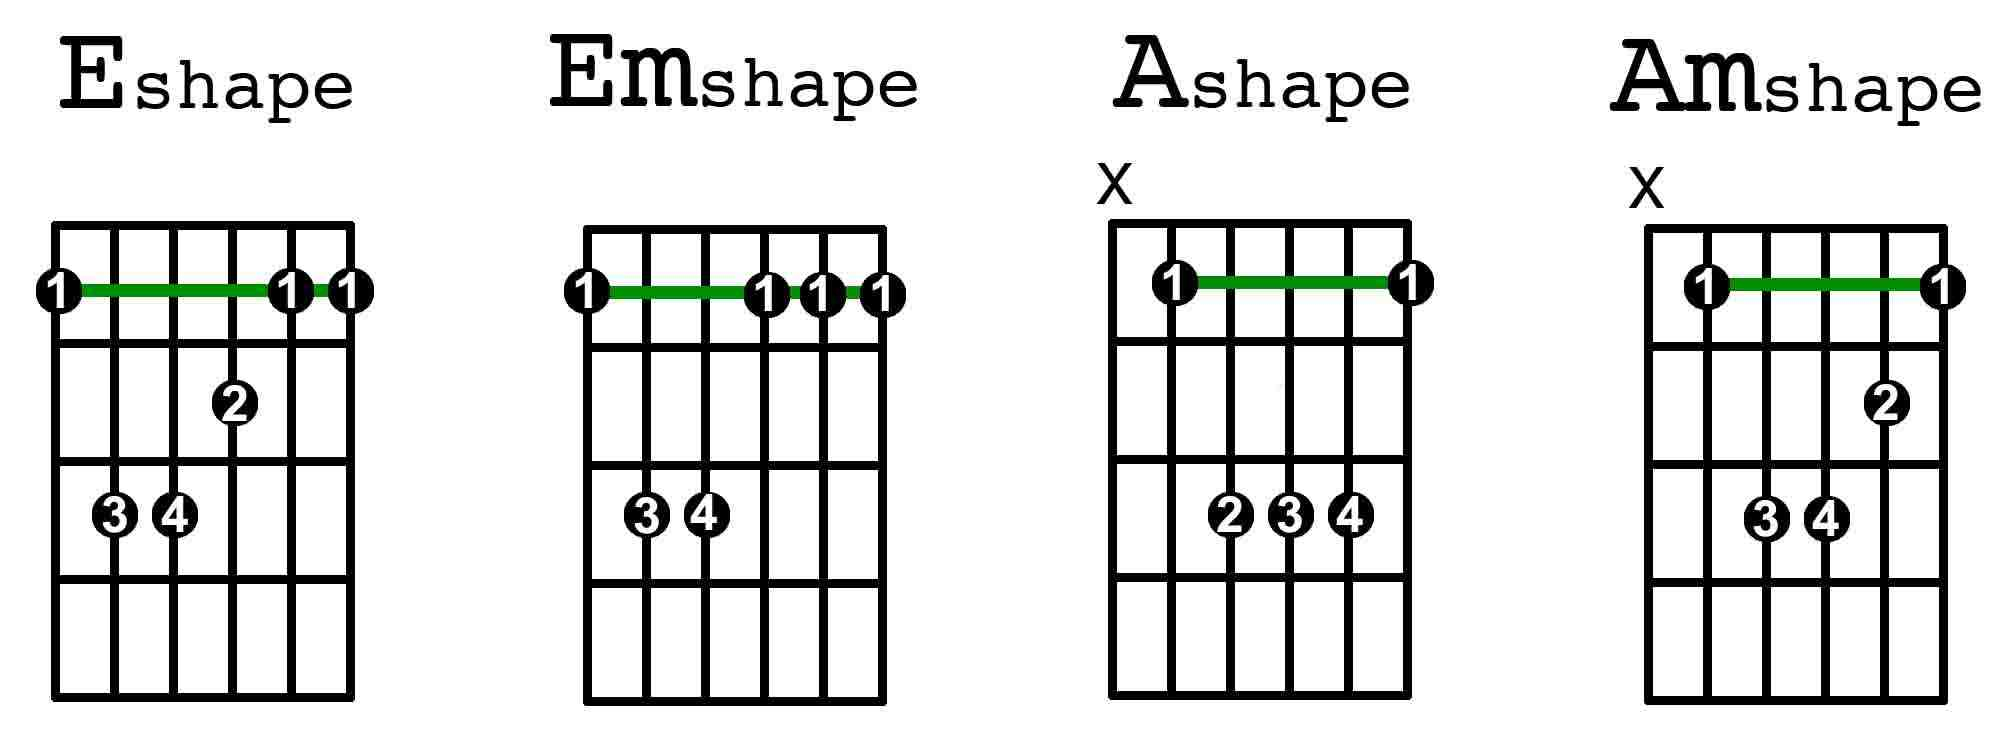 E Minor Chord The Four Most Essential Barre Chords Guitarhabits